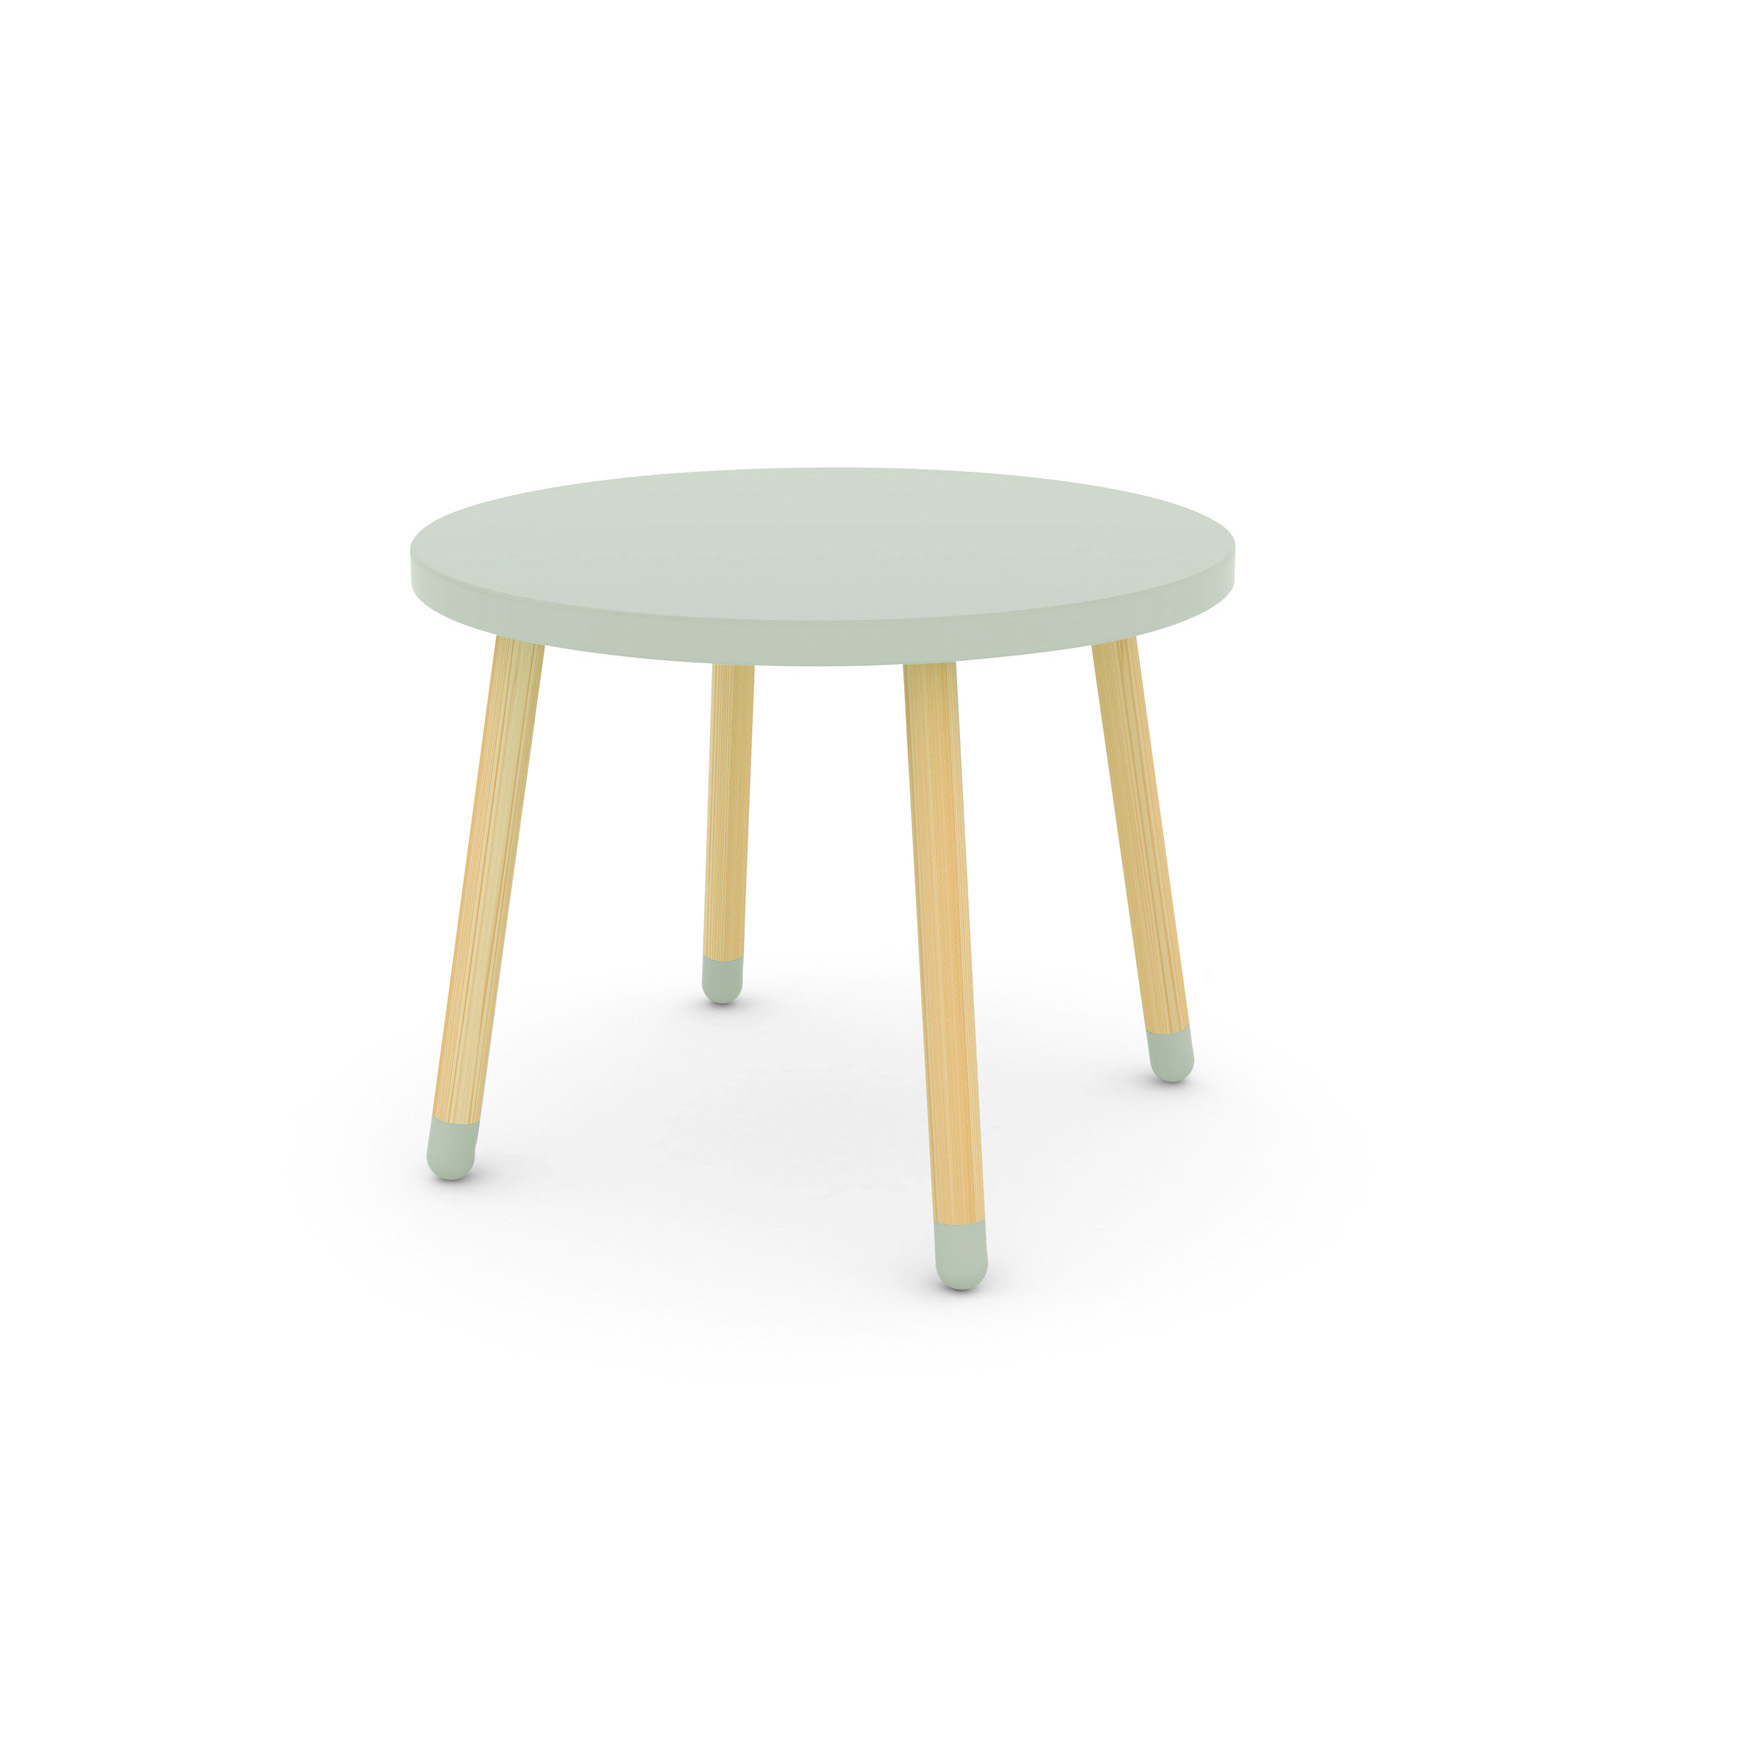 Flexa Play Childrens Table - Mint Green at FADS.co.uk